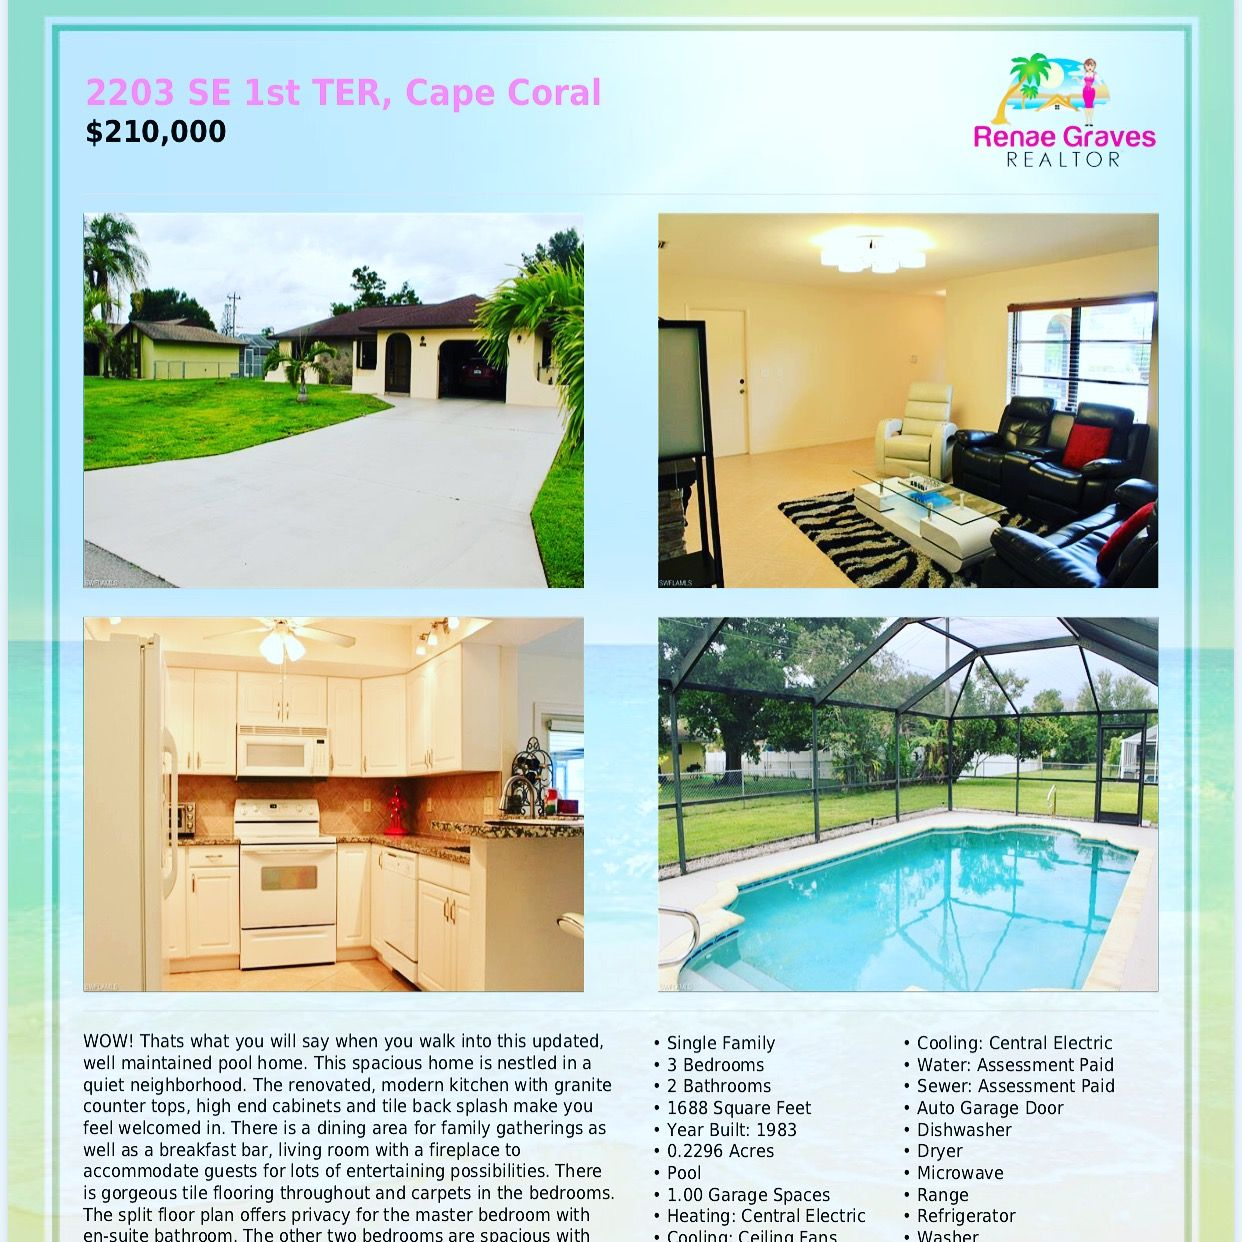 Www Capecoralfllistings Com Call Renae Graves For More Information